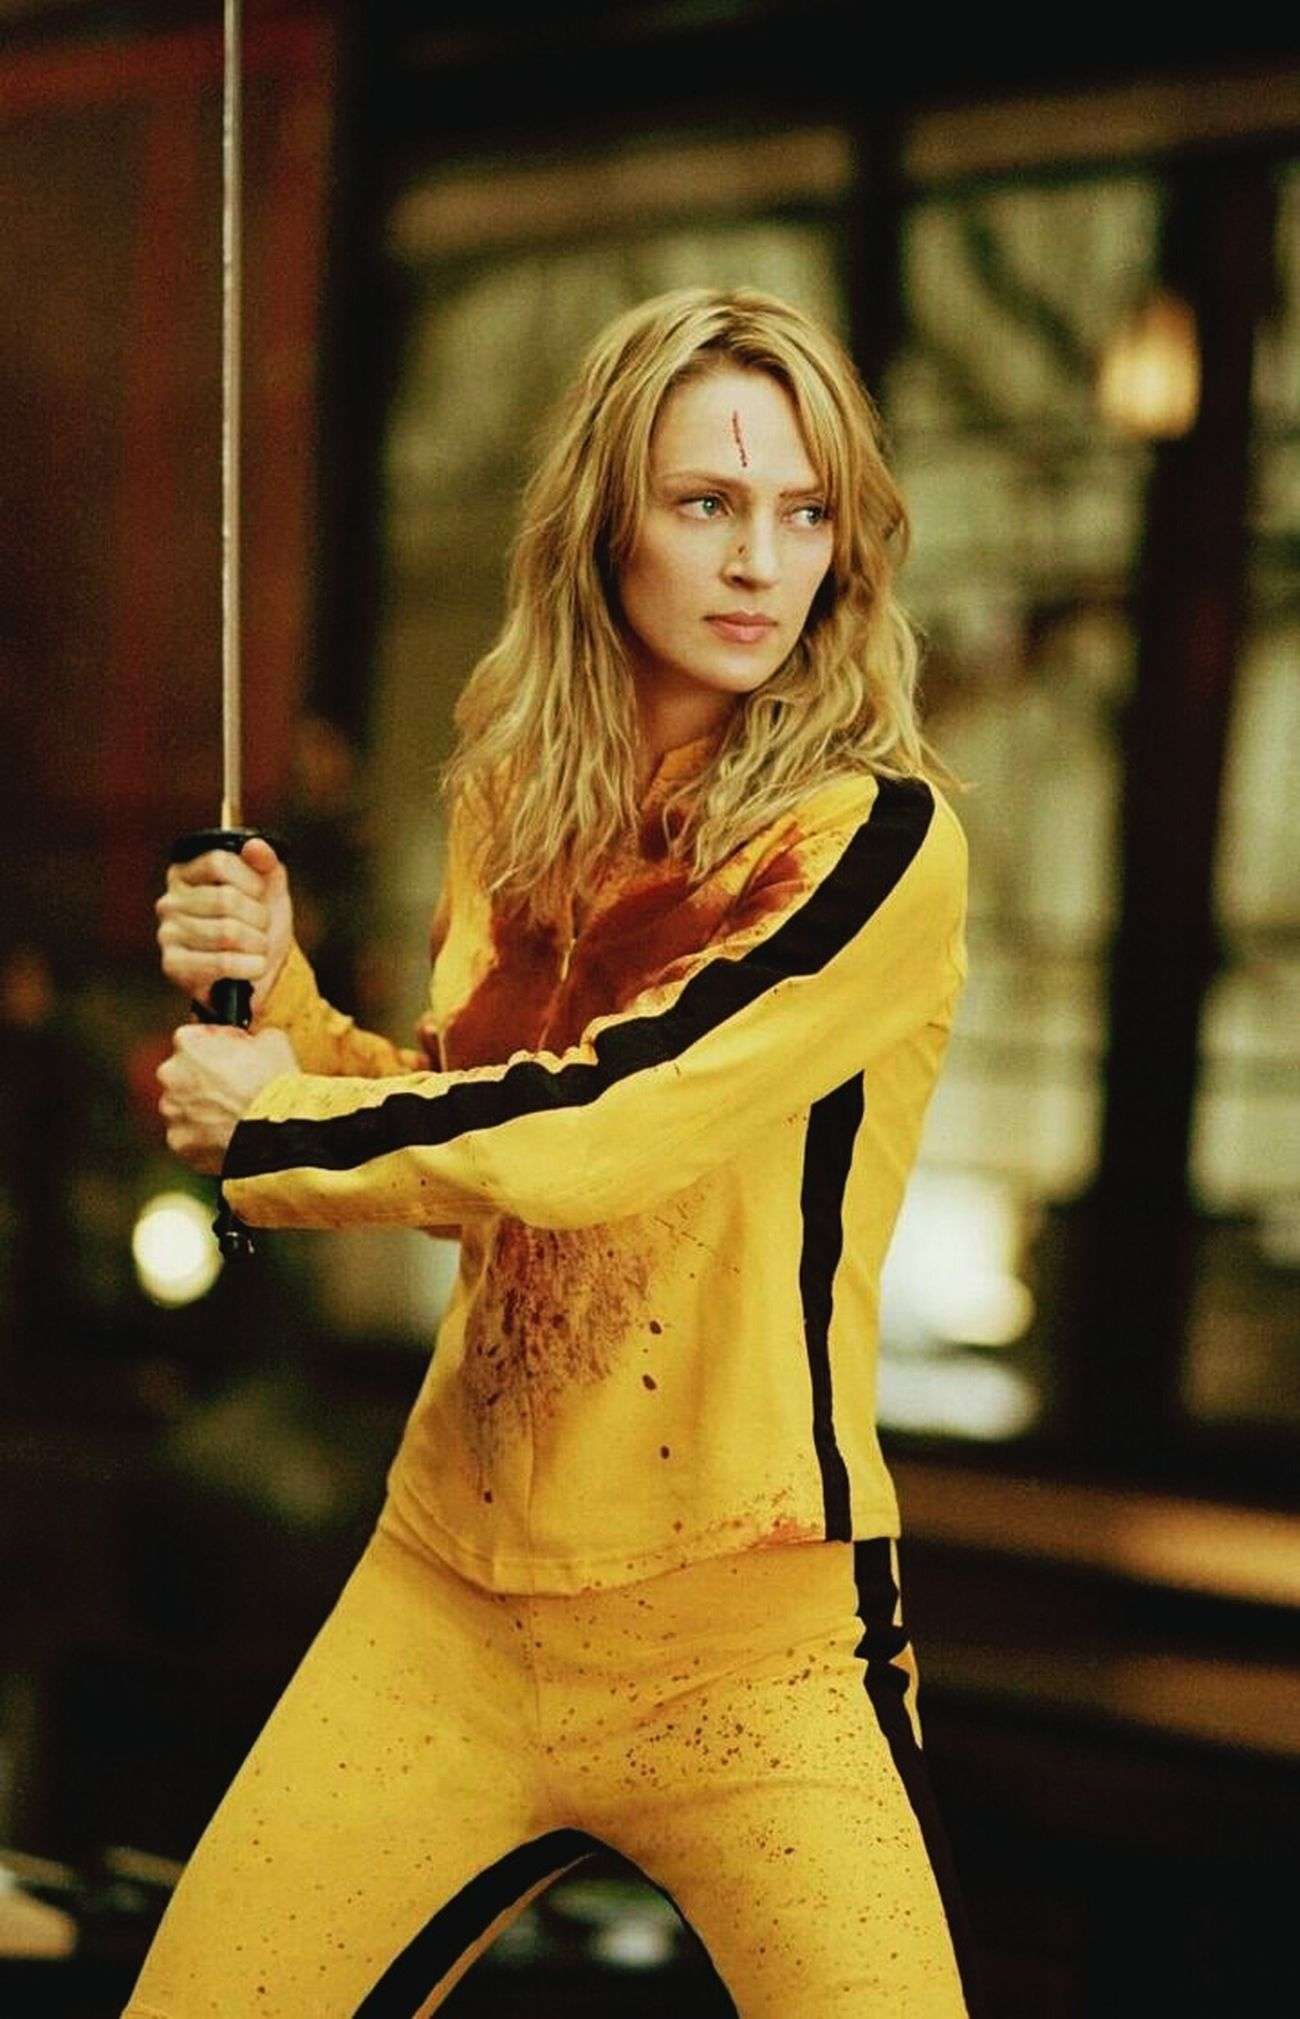 Killbillv Big Fan Love ♥ Uma Thurman Bloody Revenge Gorgeous ♥ Yellow&black Blonde ♡